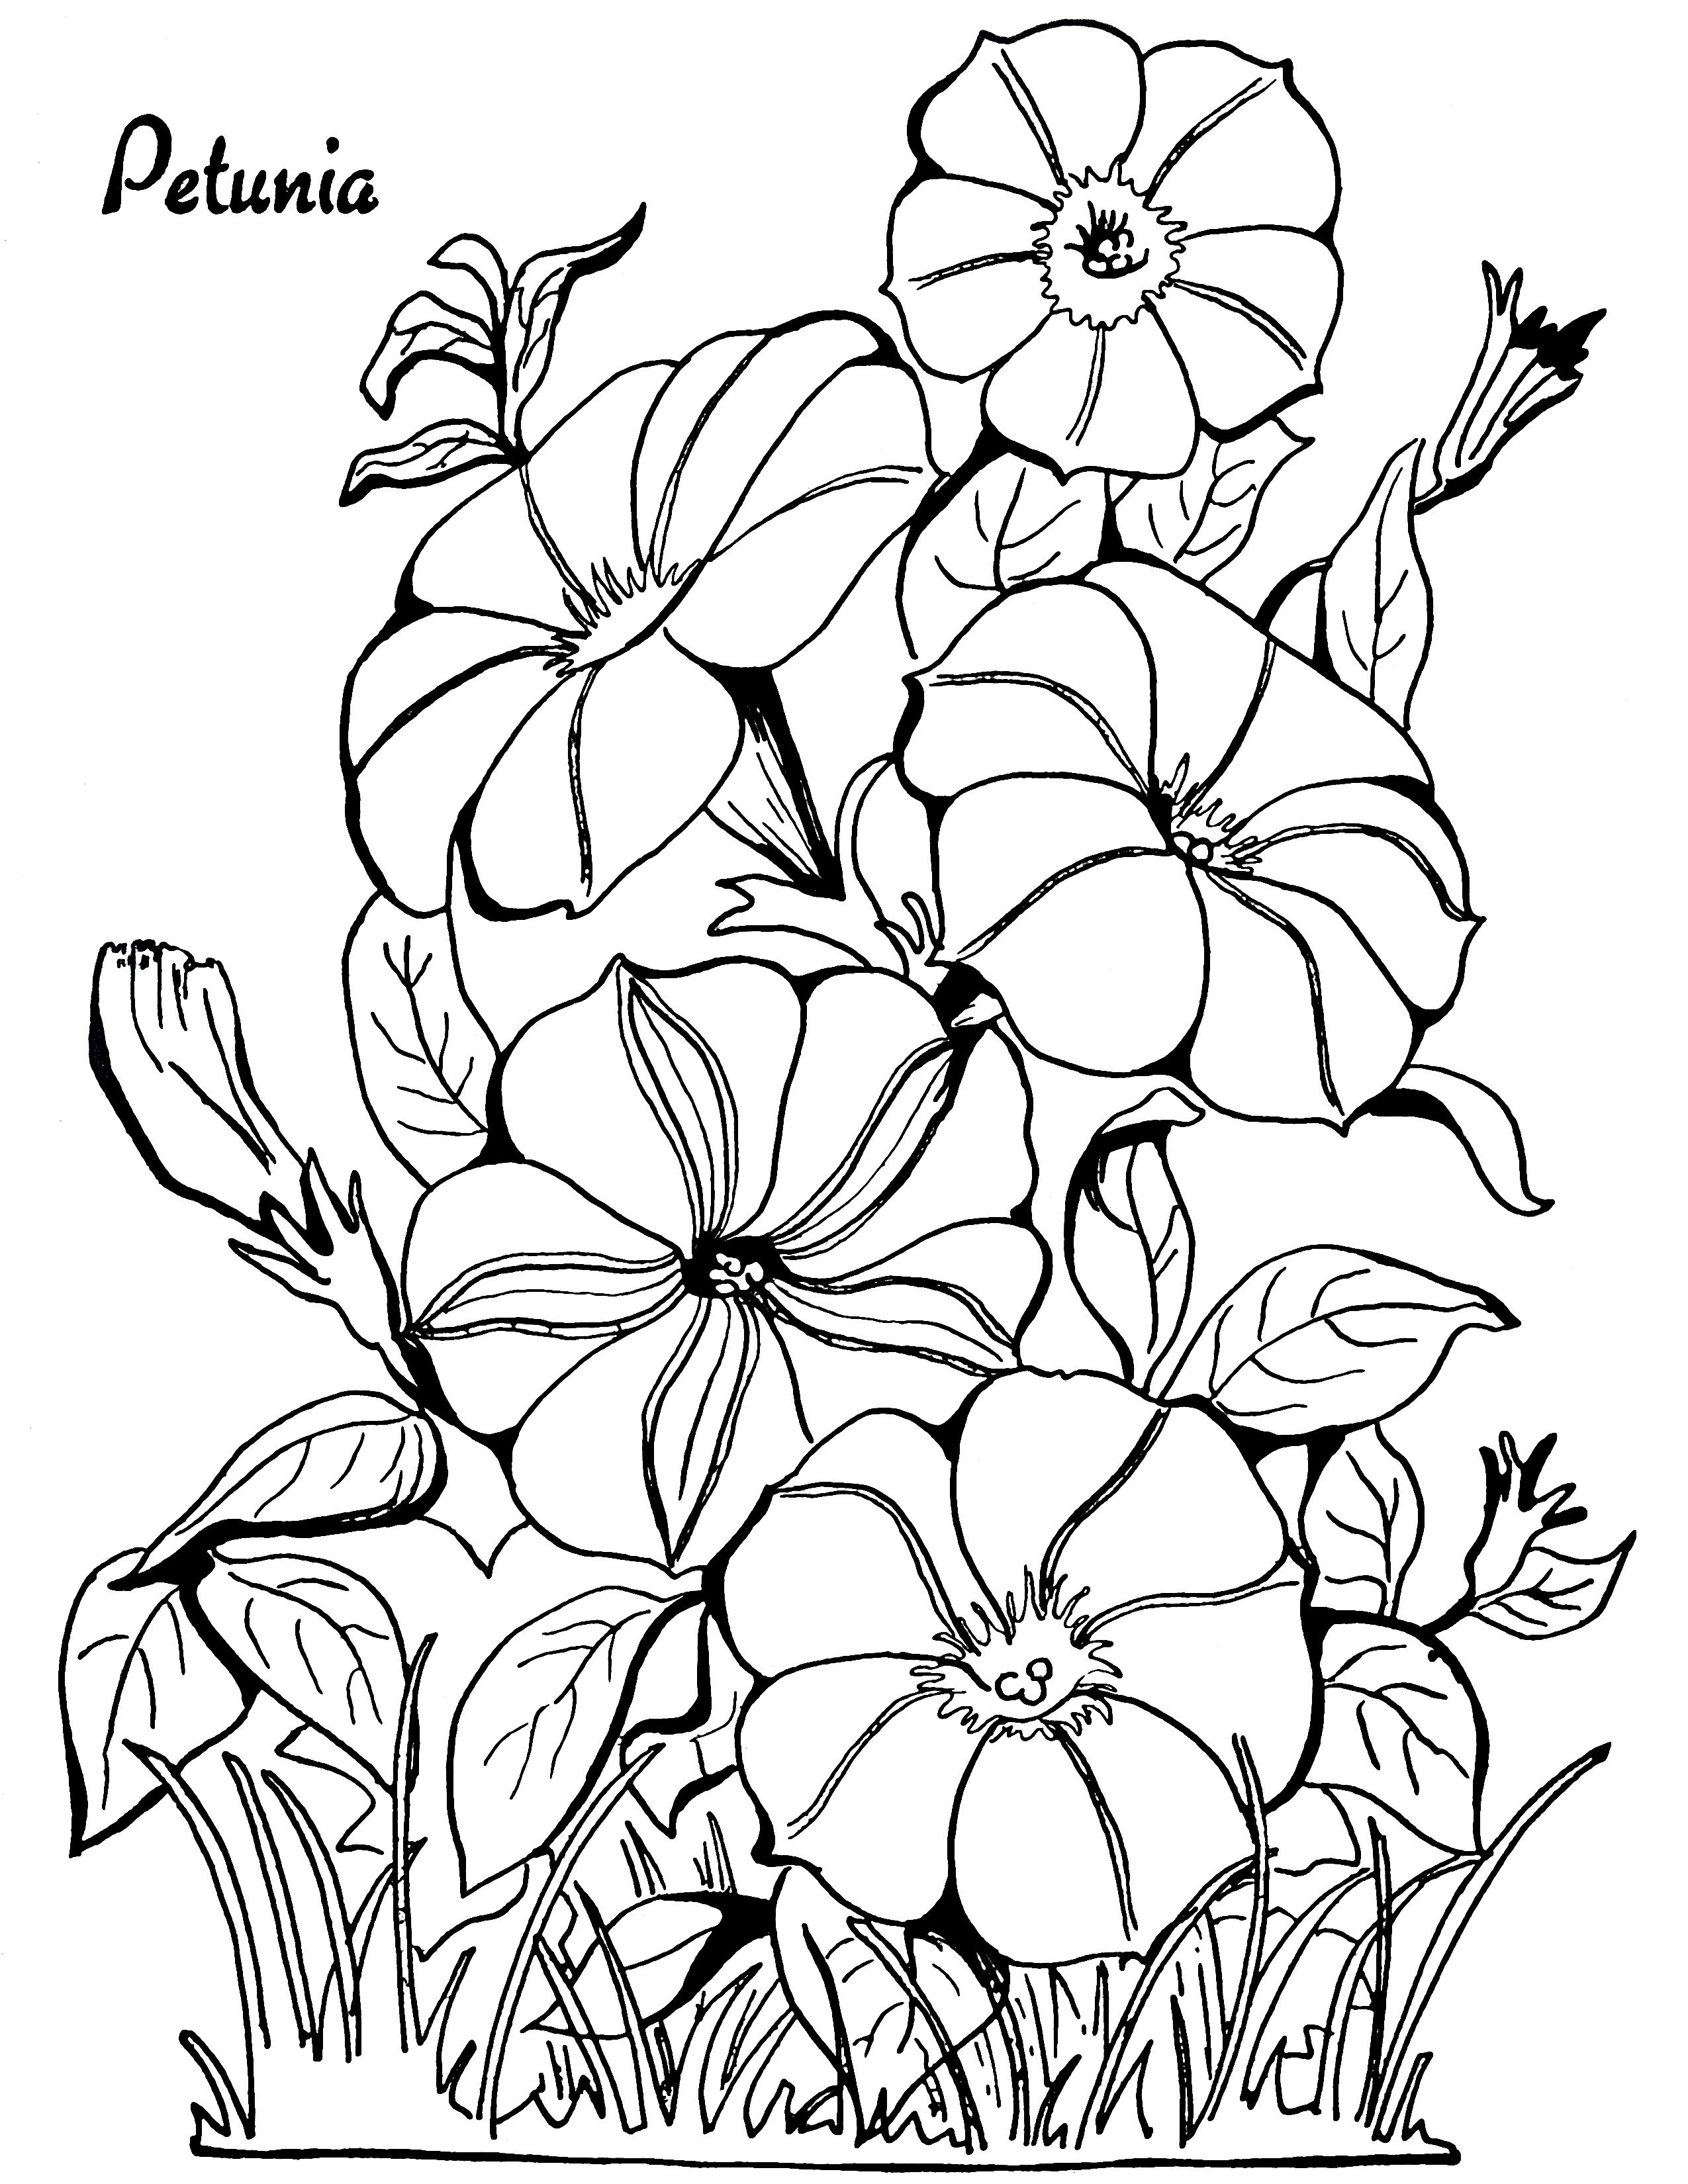 28+ Flower coloring pages for adults to print ideas in 2021